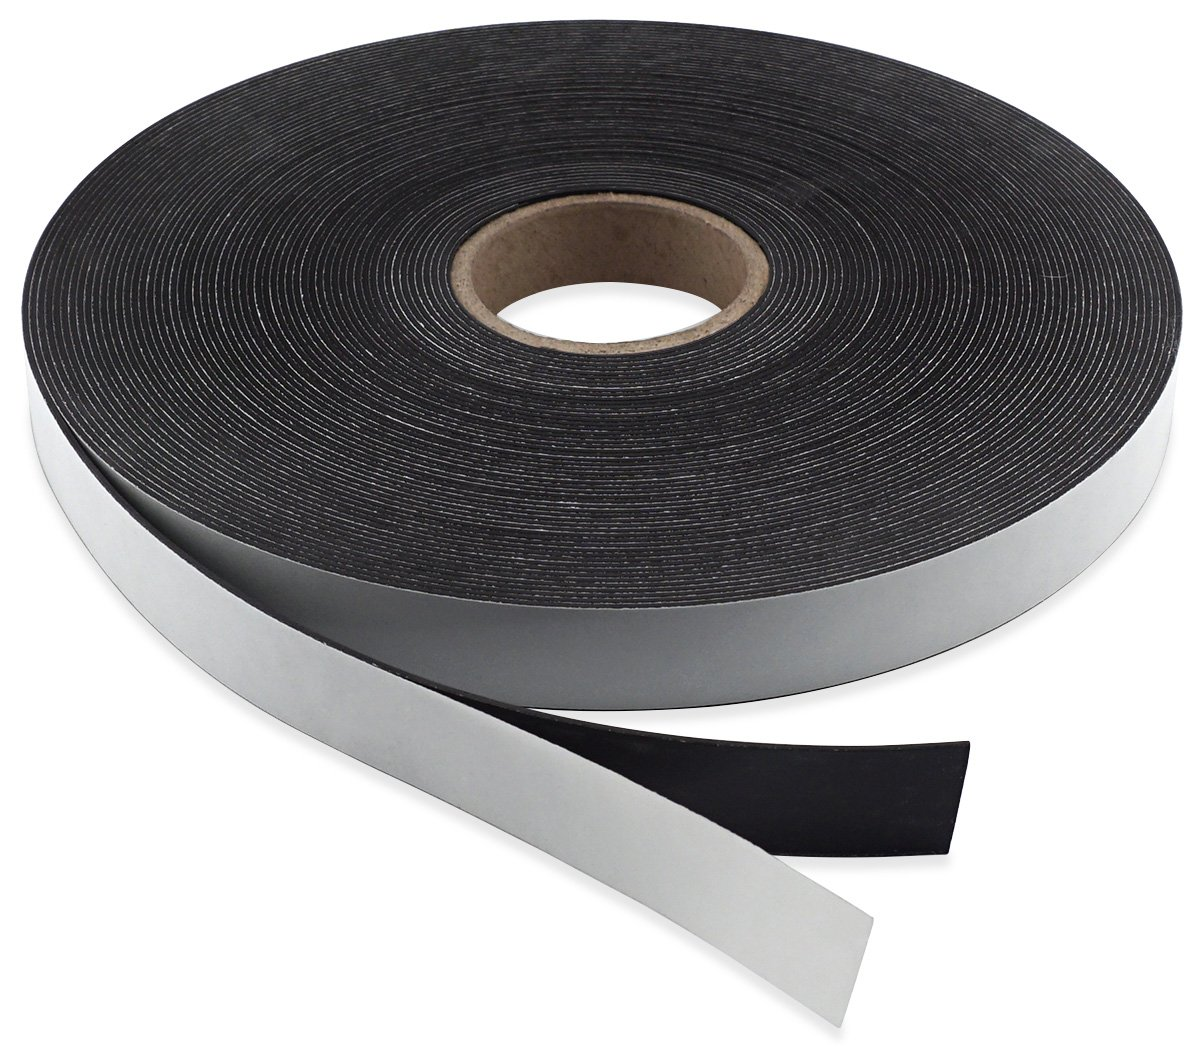 1//16 Thick 50 Feet Score-Cut Every 4 Length with 147-1 X 4 Pieces 1 Wide 1 Roll Master Magnetics Flexible Magnet Strip with Adhesive Back